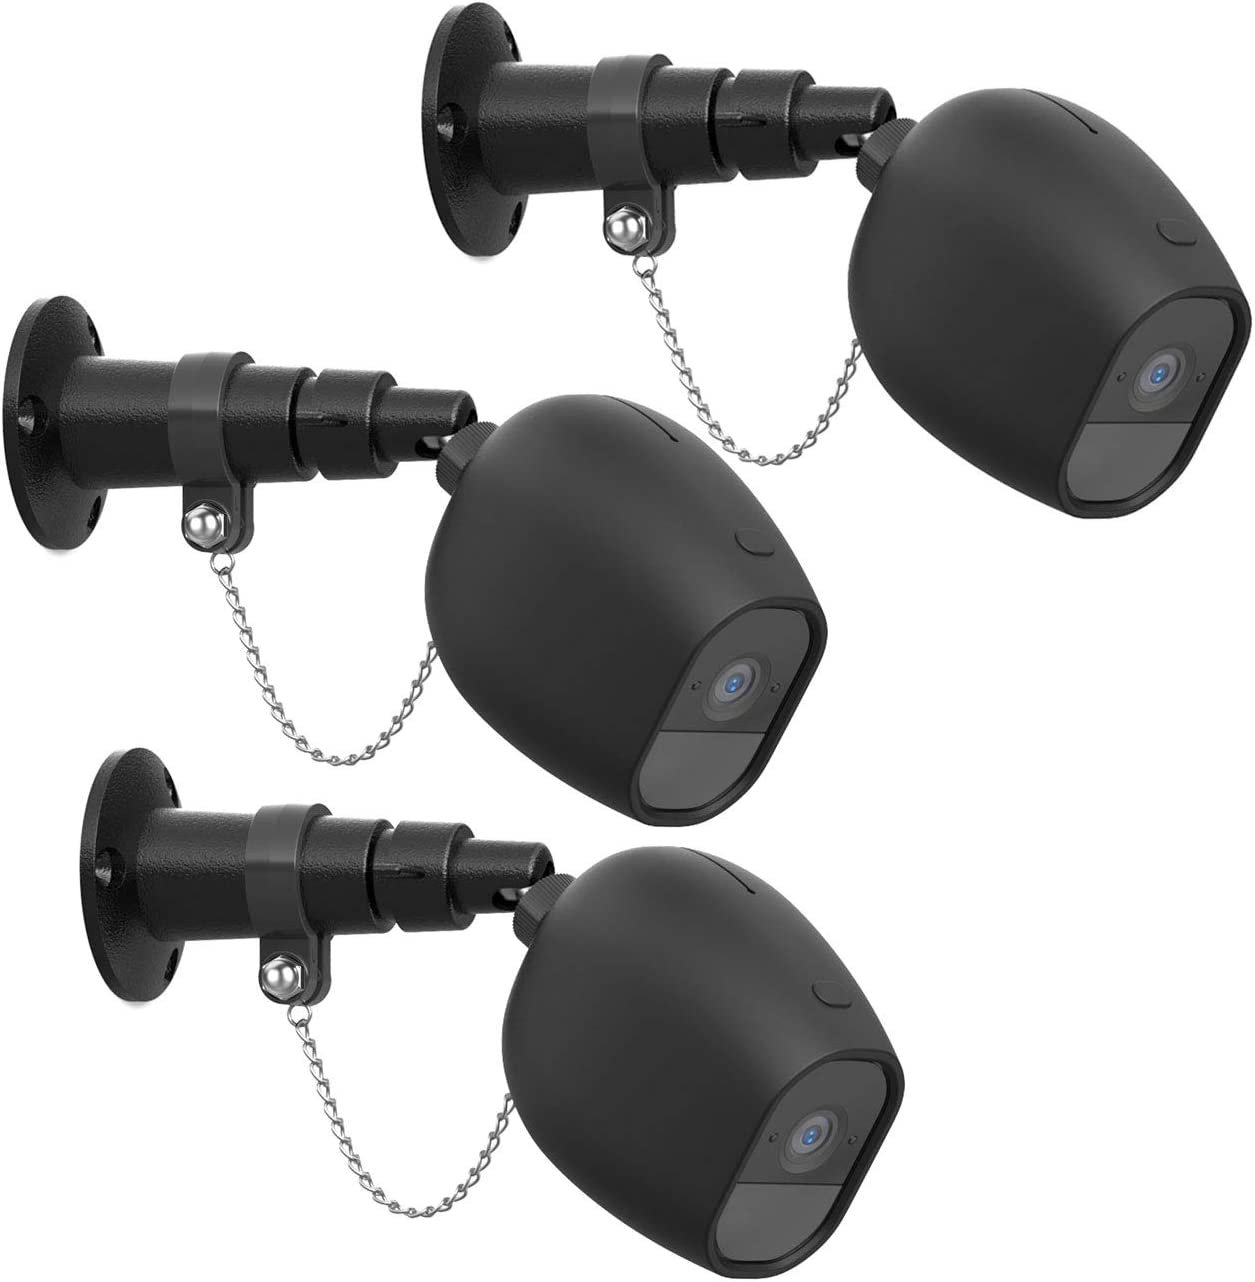 HOLACA Security Outdoor Mount for Arlo pro Arlo pro 2 with Anti-Theft Chain,Silicone Protective Case-Extra Protection for Your Arlo Wireless Home Security Camera (3 Pack, Black)